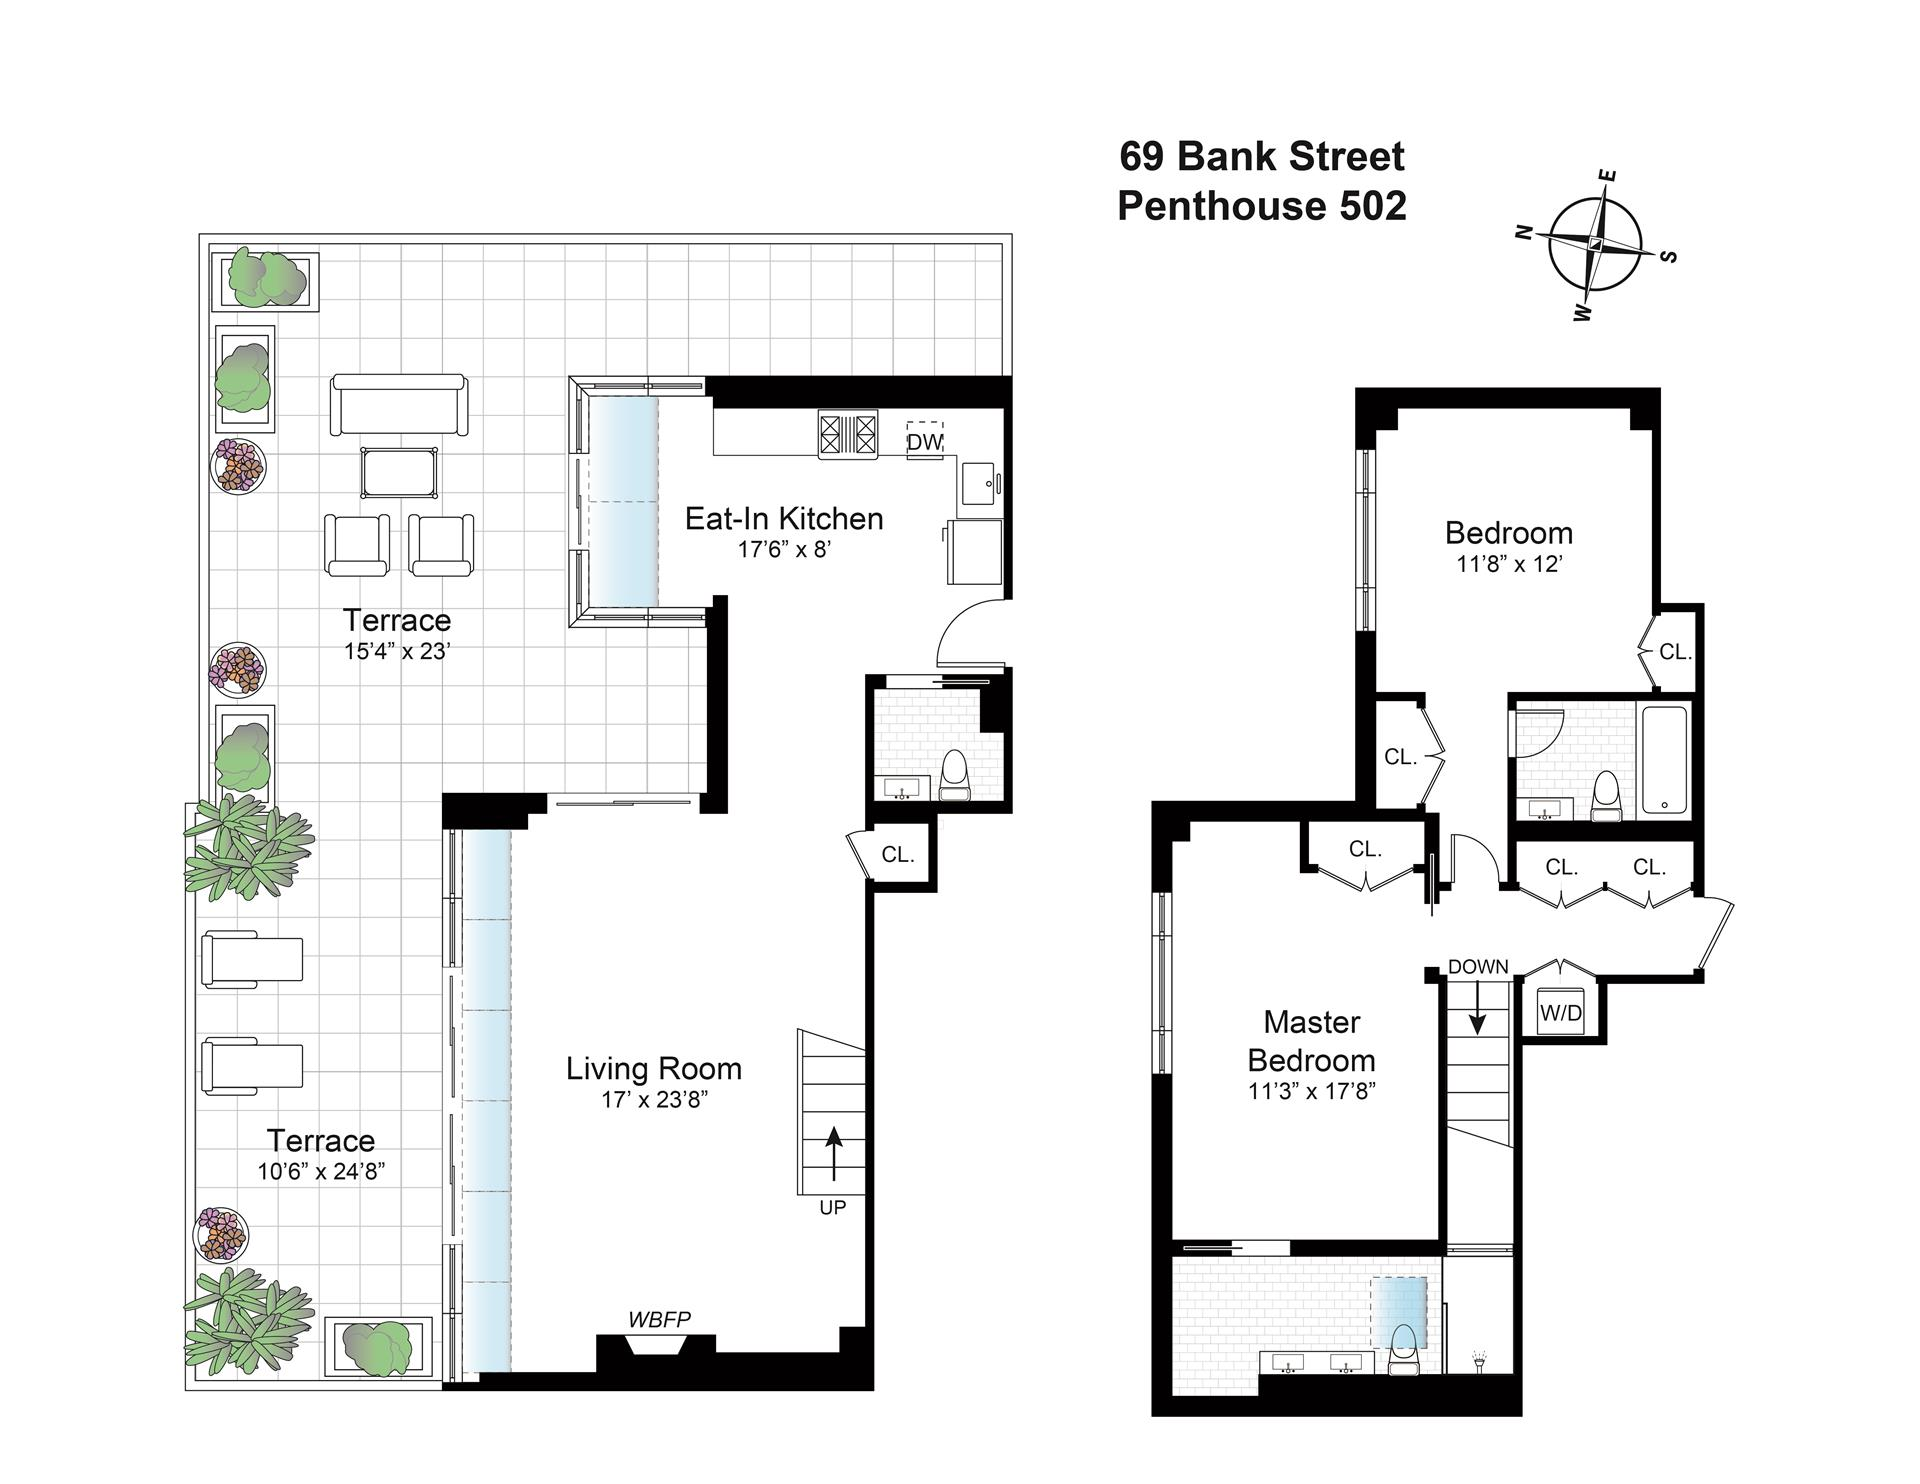 Floor plan of BANK STRAND, 69 Bank St, PH502 - West Village - Meatpacking District, New York